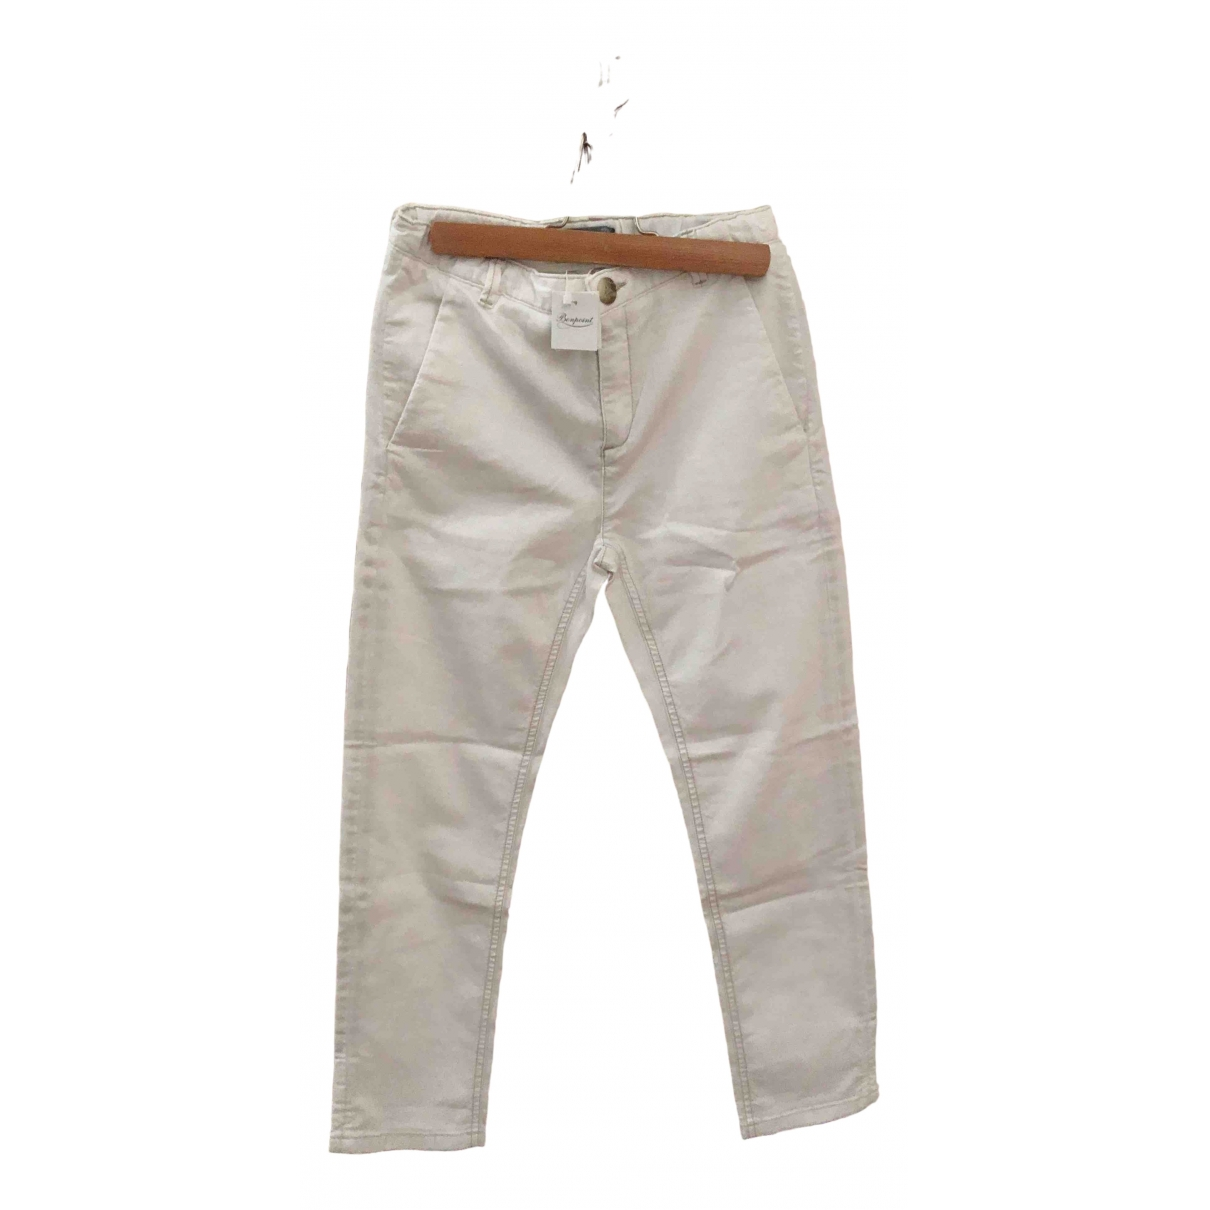 Bonpoint \N White Cotton Trousers for Kids 10 years - until 56 inches UK